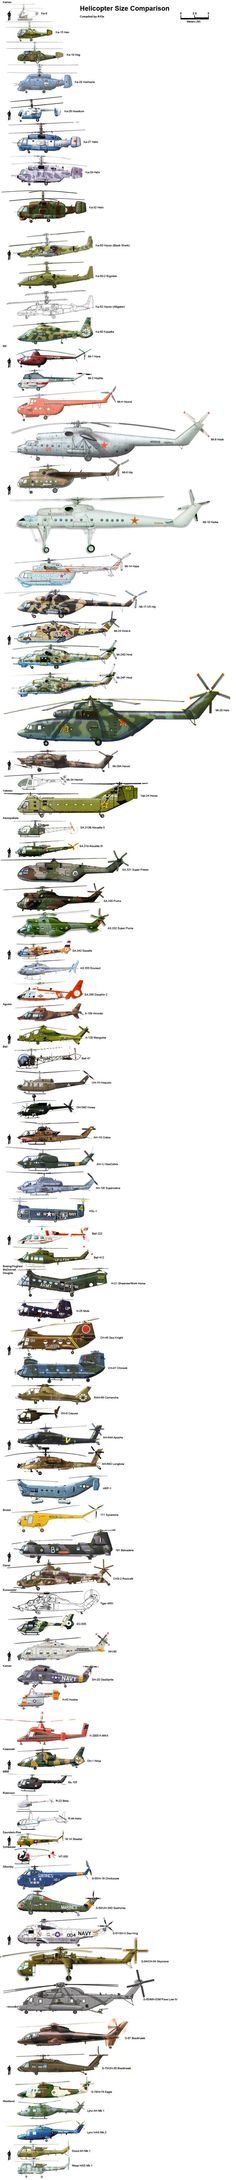 comparaison-taille-helicoptere - La boite verte (:Tap The LINK NOW:) We provide the best essential unique equipment and gear for active duty American patriotic military branches, well strategic selected.We love tactical American gear Military Helicopter, Military Aircraft, Helicopter Cake, Helicopter Birthday, Military Weapons, War Machine, Military Vehicles, Air Force, Fighter Jets